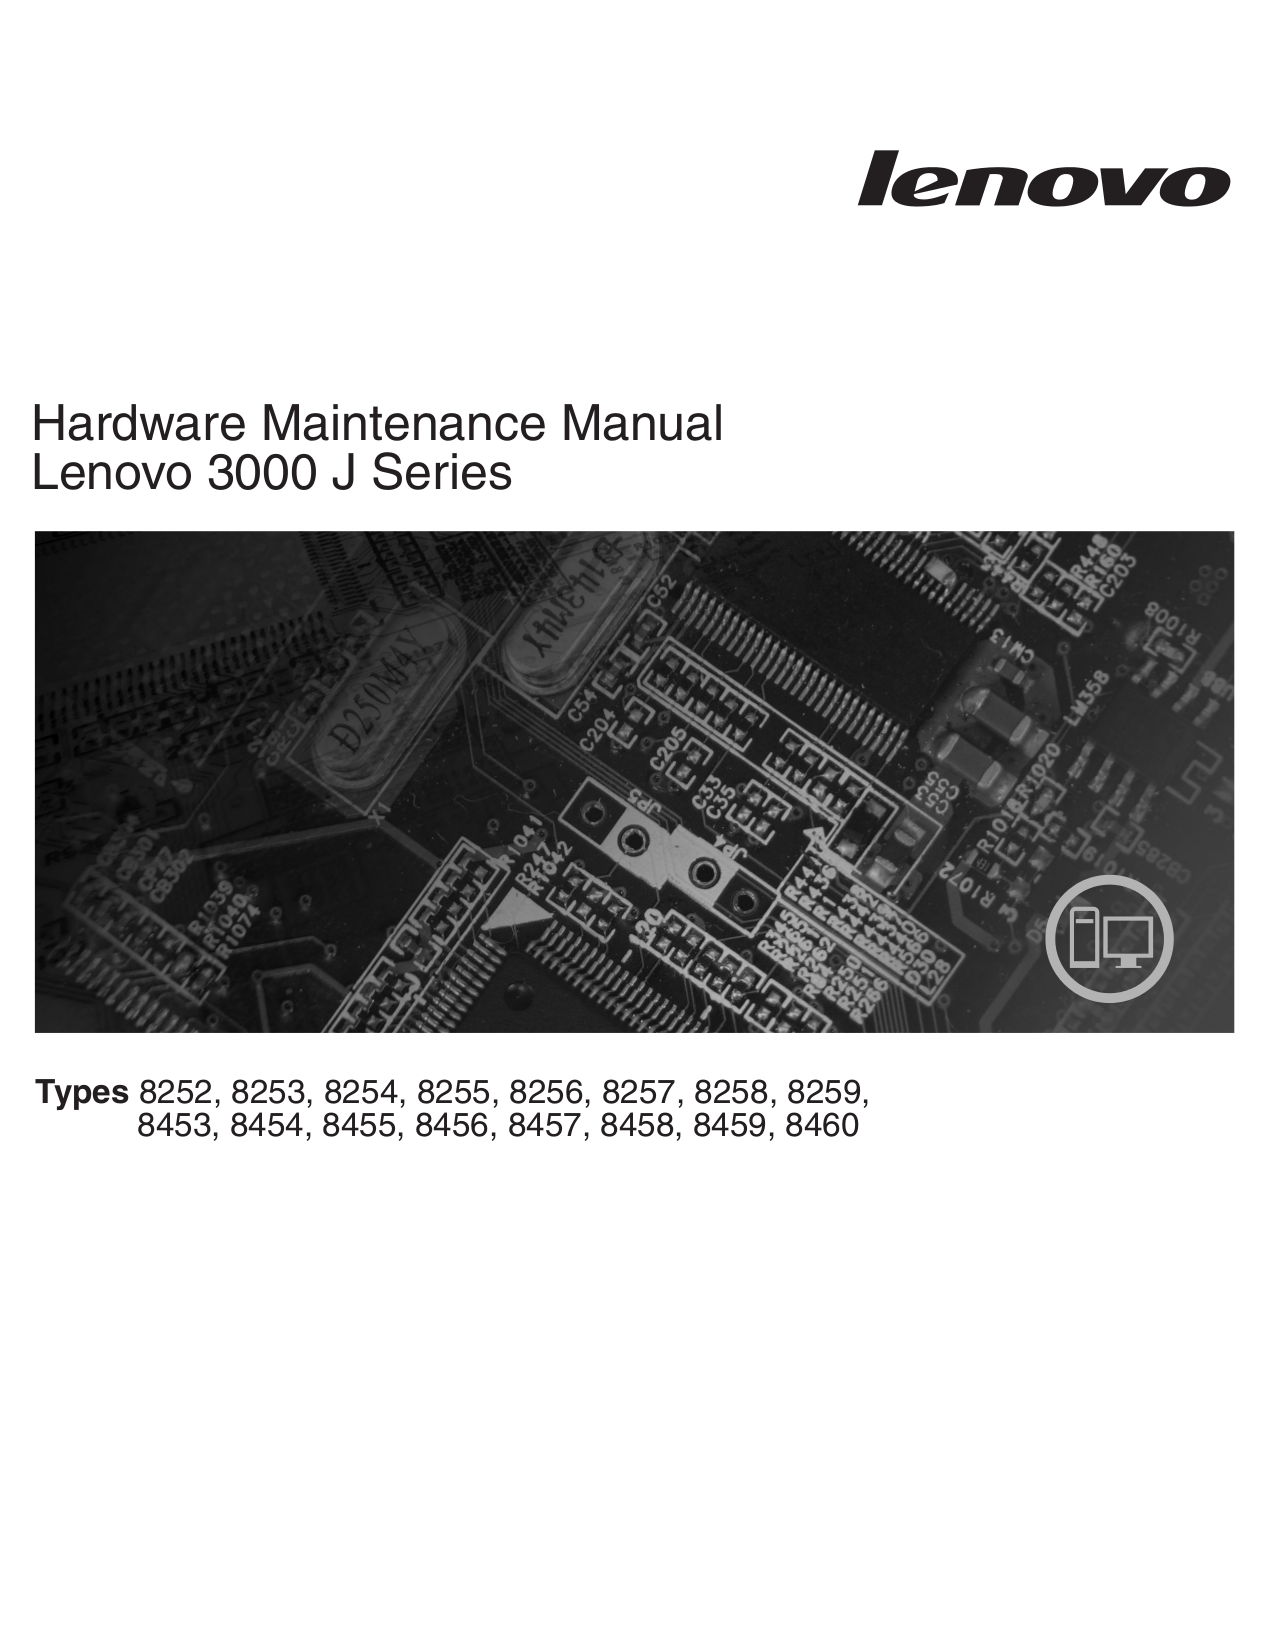 pdf for Lenovo Desktop 3000 J100 8253 manual